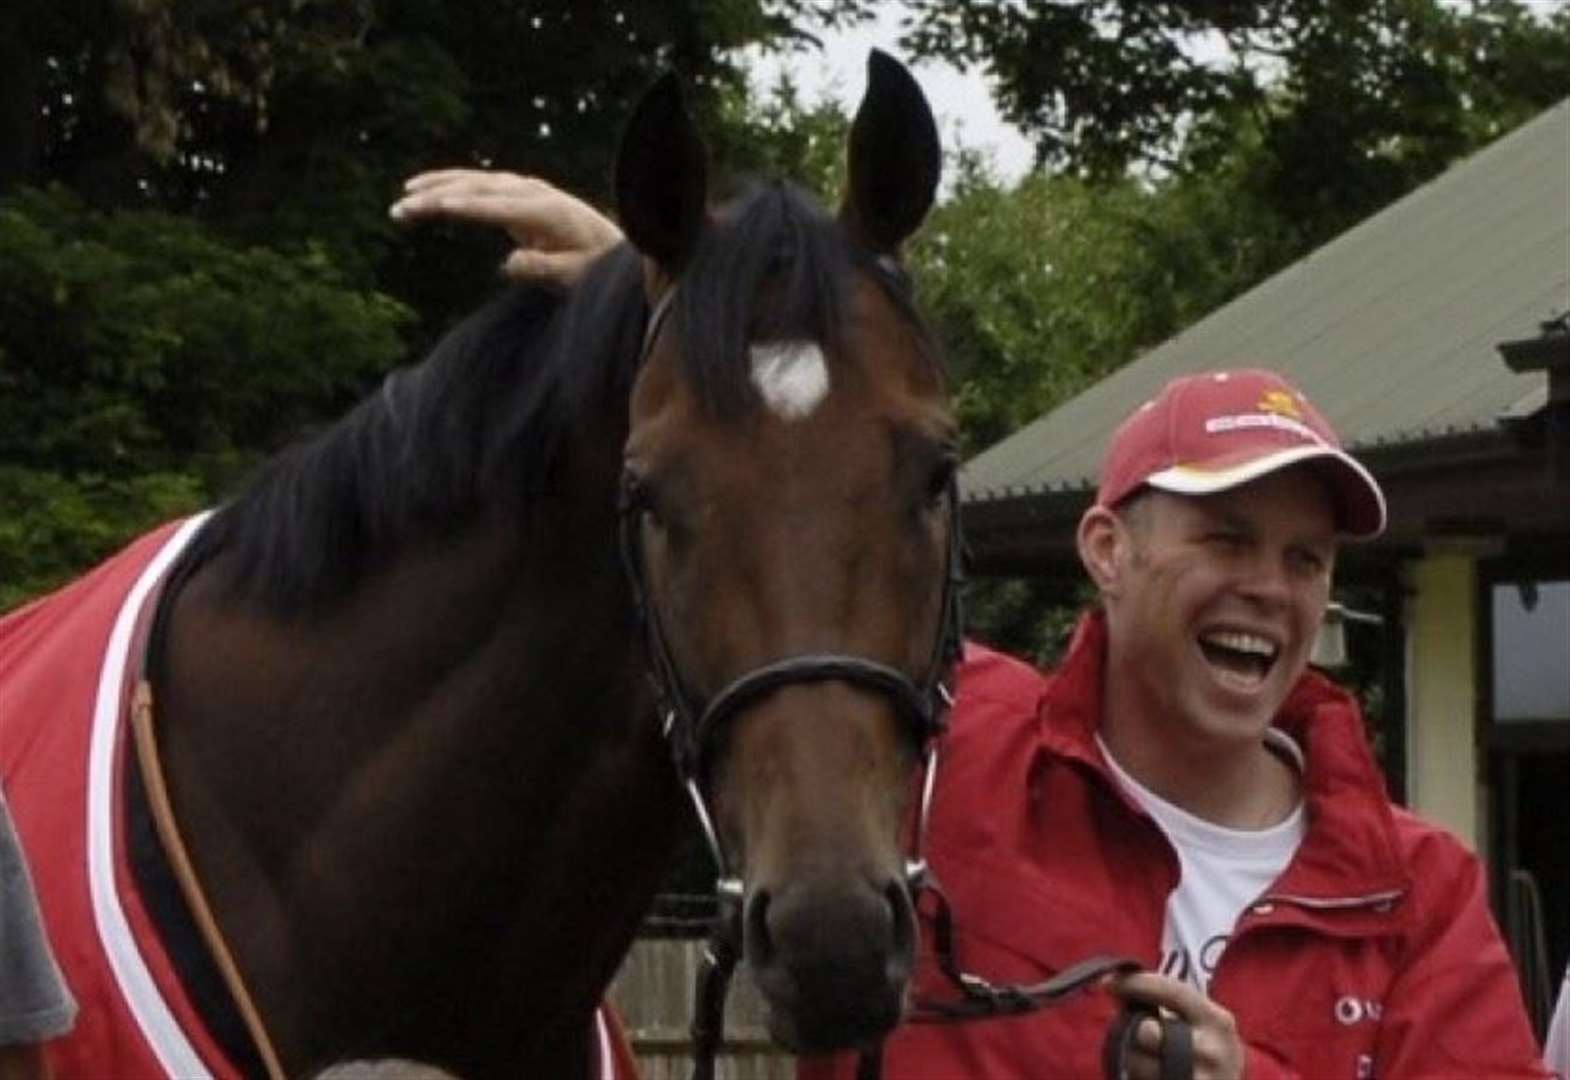 Newmarket's racing community shocked by death of James Cronin in tragic accident